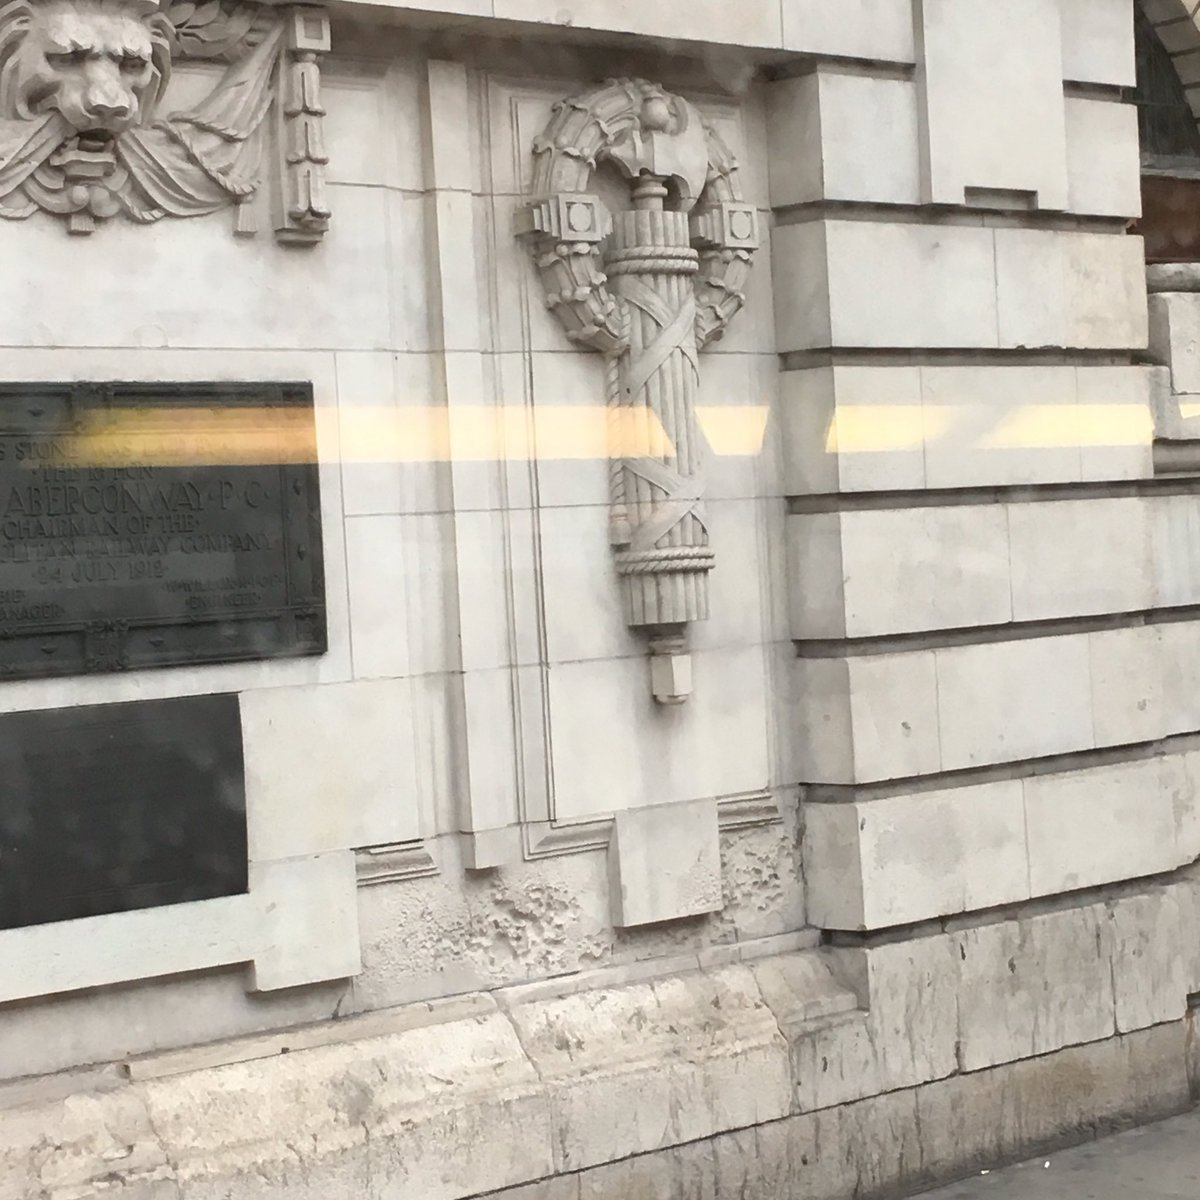 Patrick hussey on twitter erm is this a facist symbol on baker patrick hussey on twitter erm is this a facist symbol on baker street a fasces only caught fleeting glance biocorpaavc Choice Image